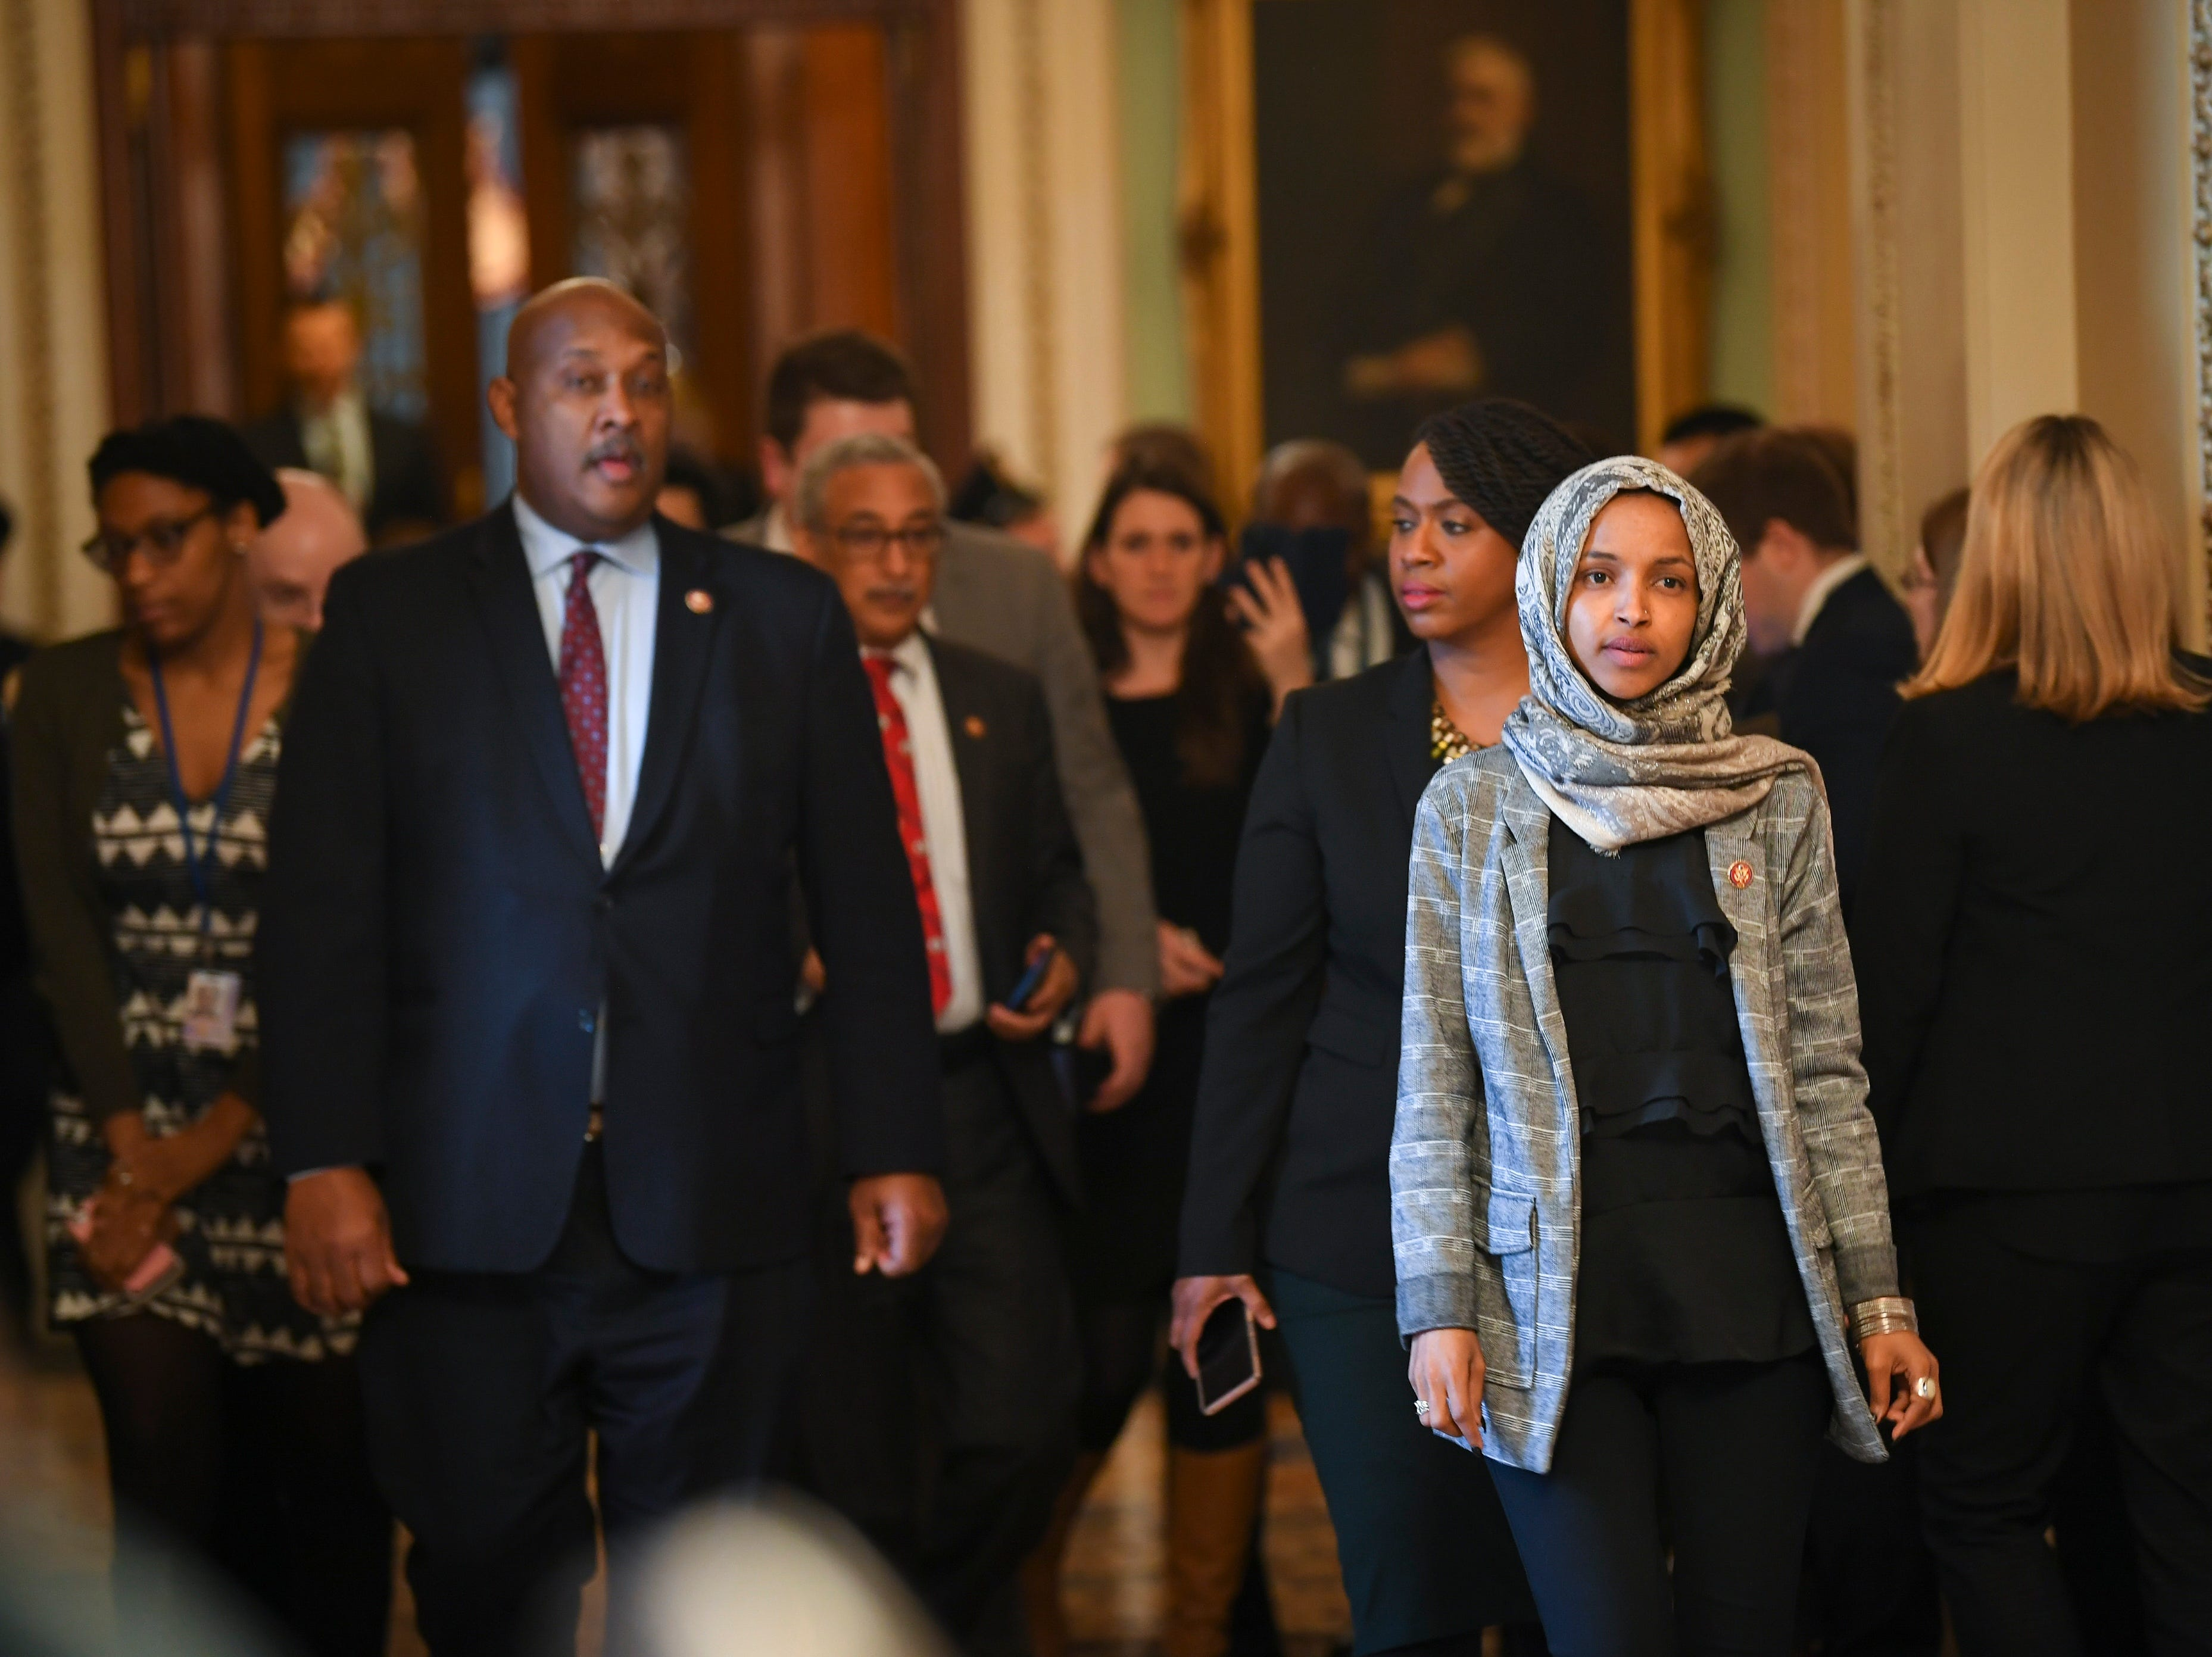 Rep. Ilhan Omar (D-MN) and other House Democrat members walking from the Senate Chambers after the Senate voted to reject a pair of dueling bills Thursday to fund the federal government and end the longest partial government shutdown in history.